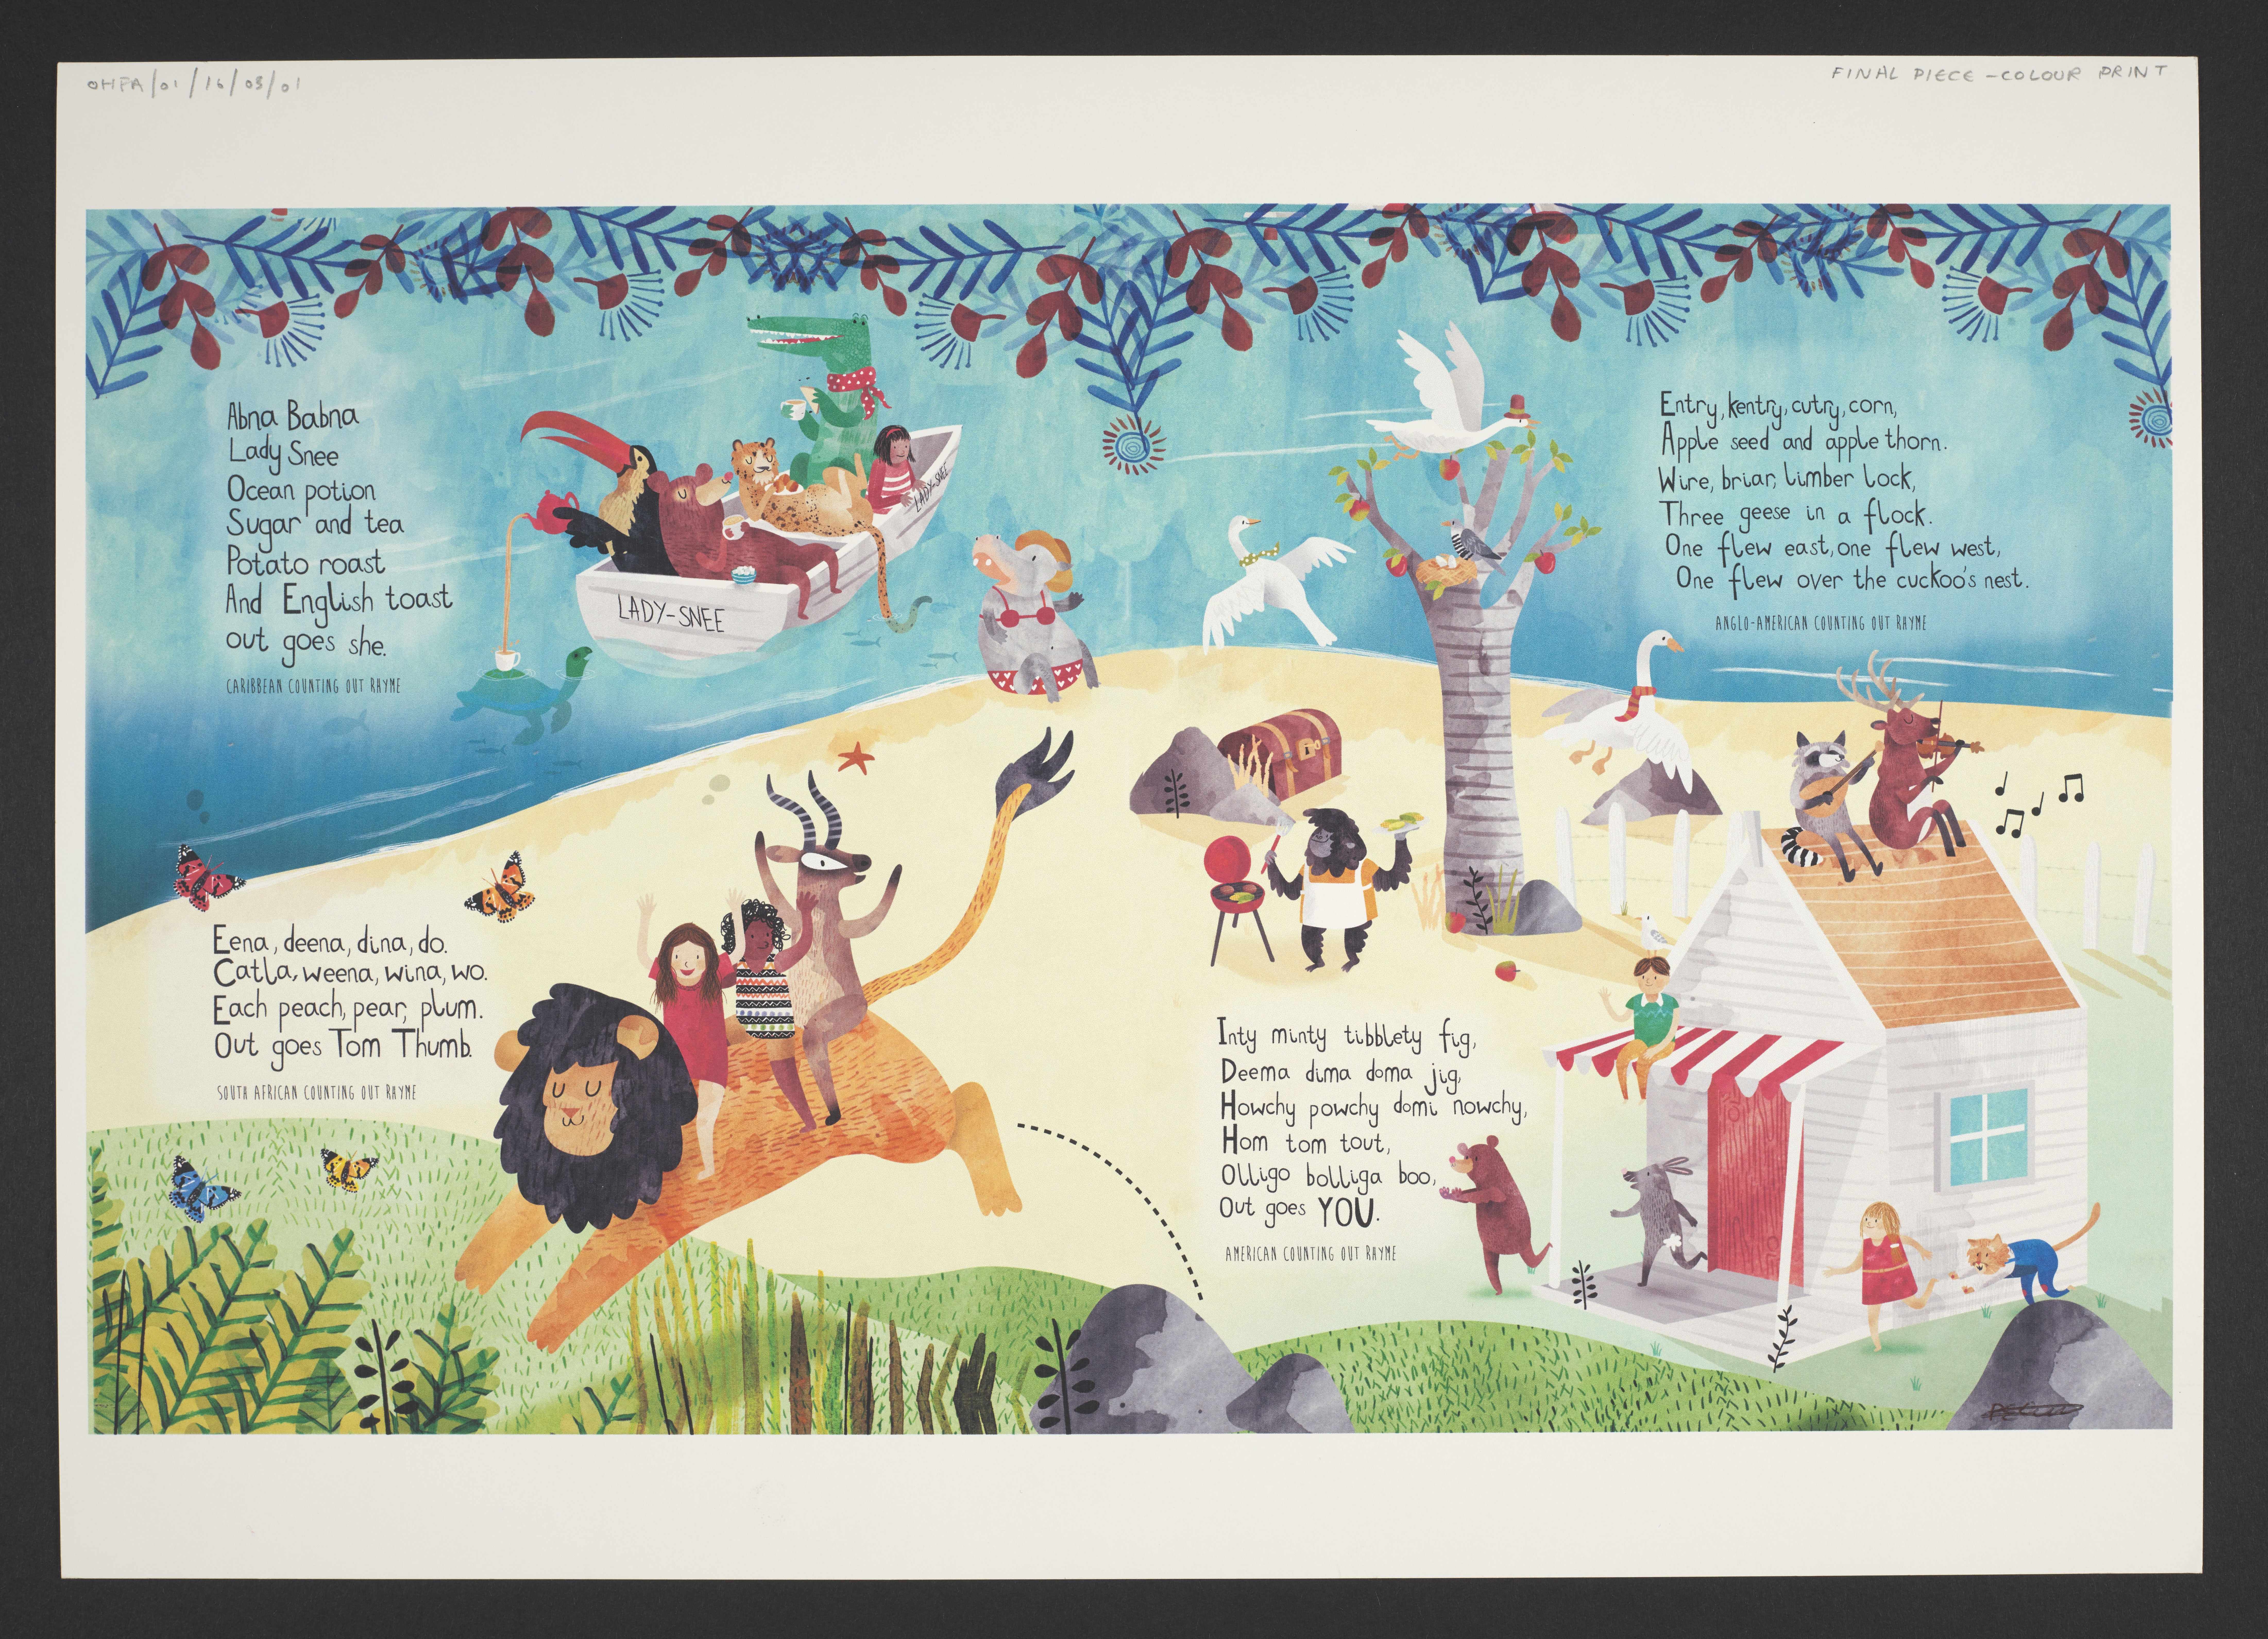 Double page spread showing counting rhymes from different countries and illustrations of children and animals.